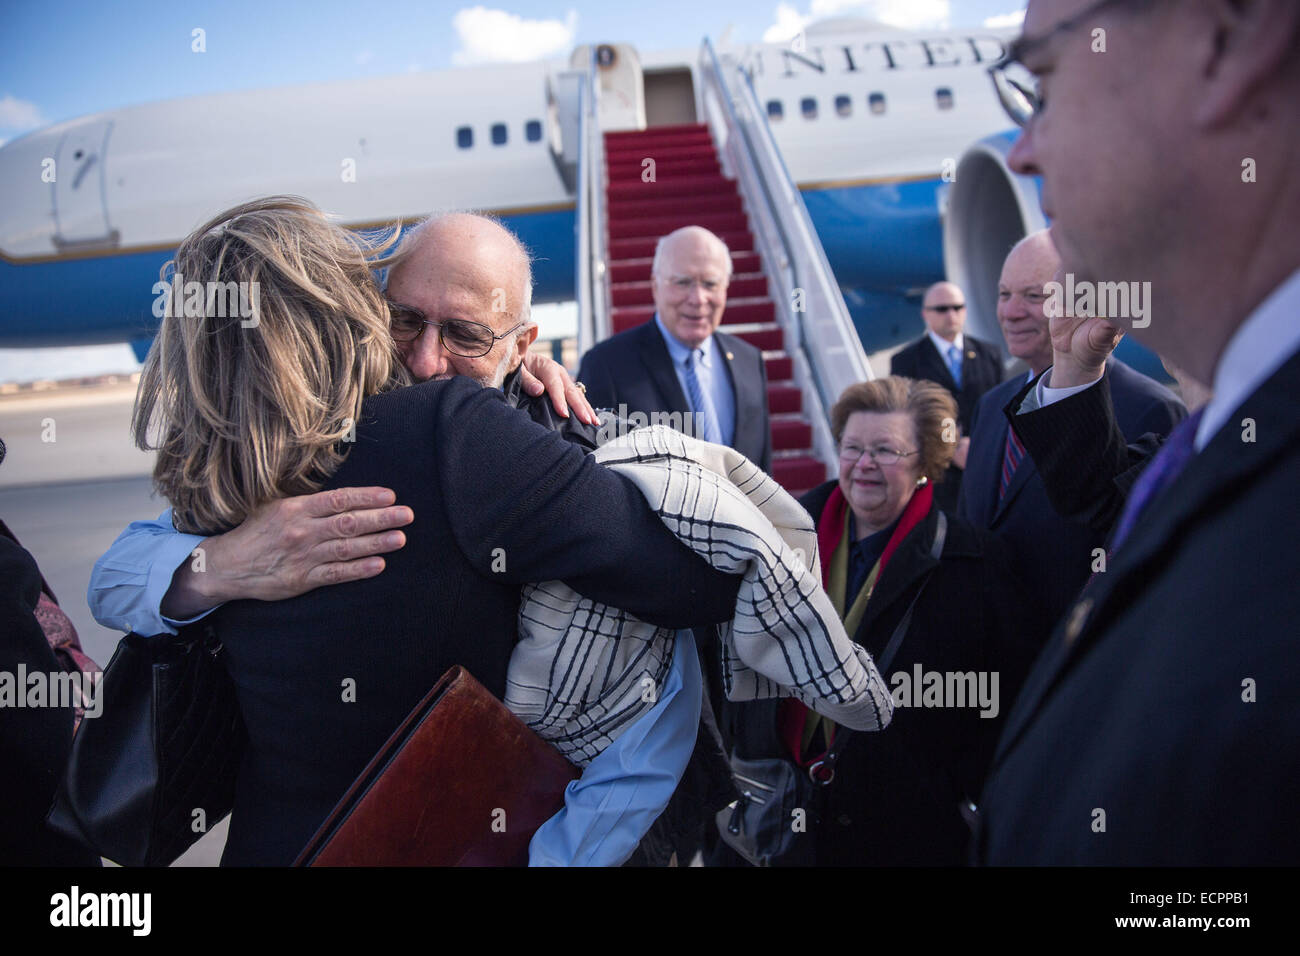 Maryland, USA. 17th Dec, 2014. Photo provided by the White House shows U.S. contractor Alan Gross (2nd L) arriving - Stock Image